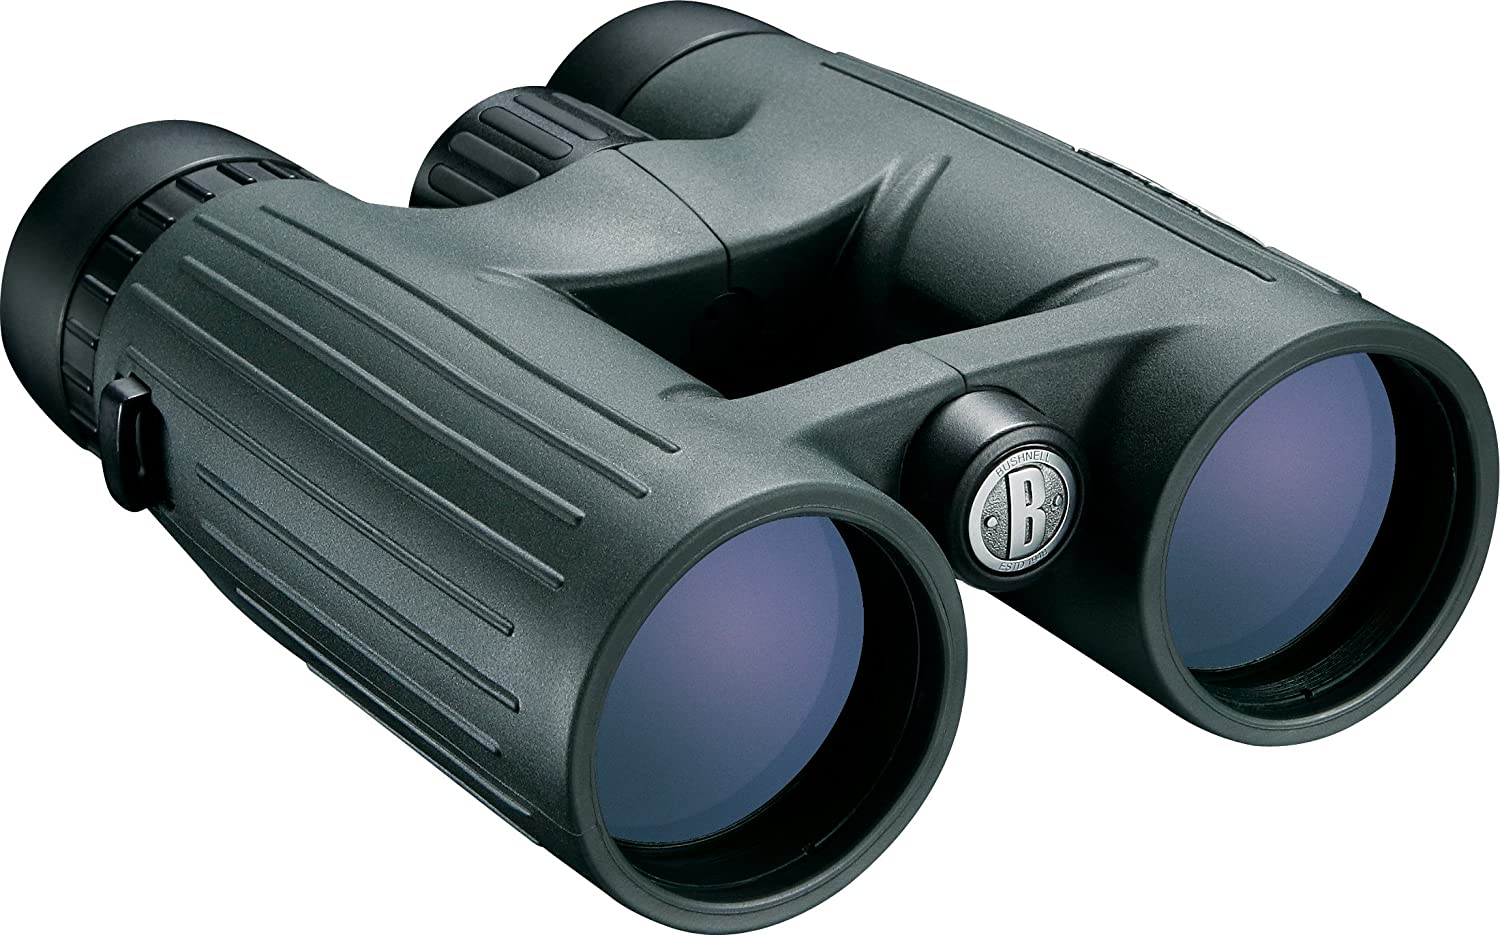 Top 7 Best Hunting Binoculars under $200 and $100 2